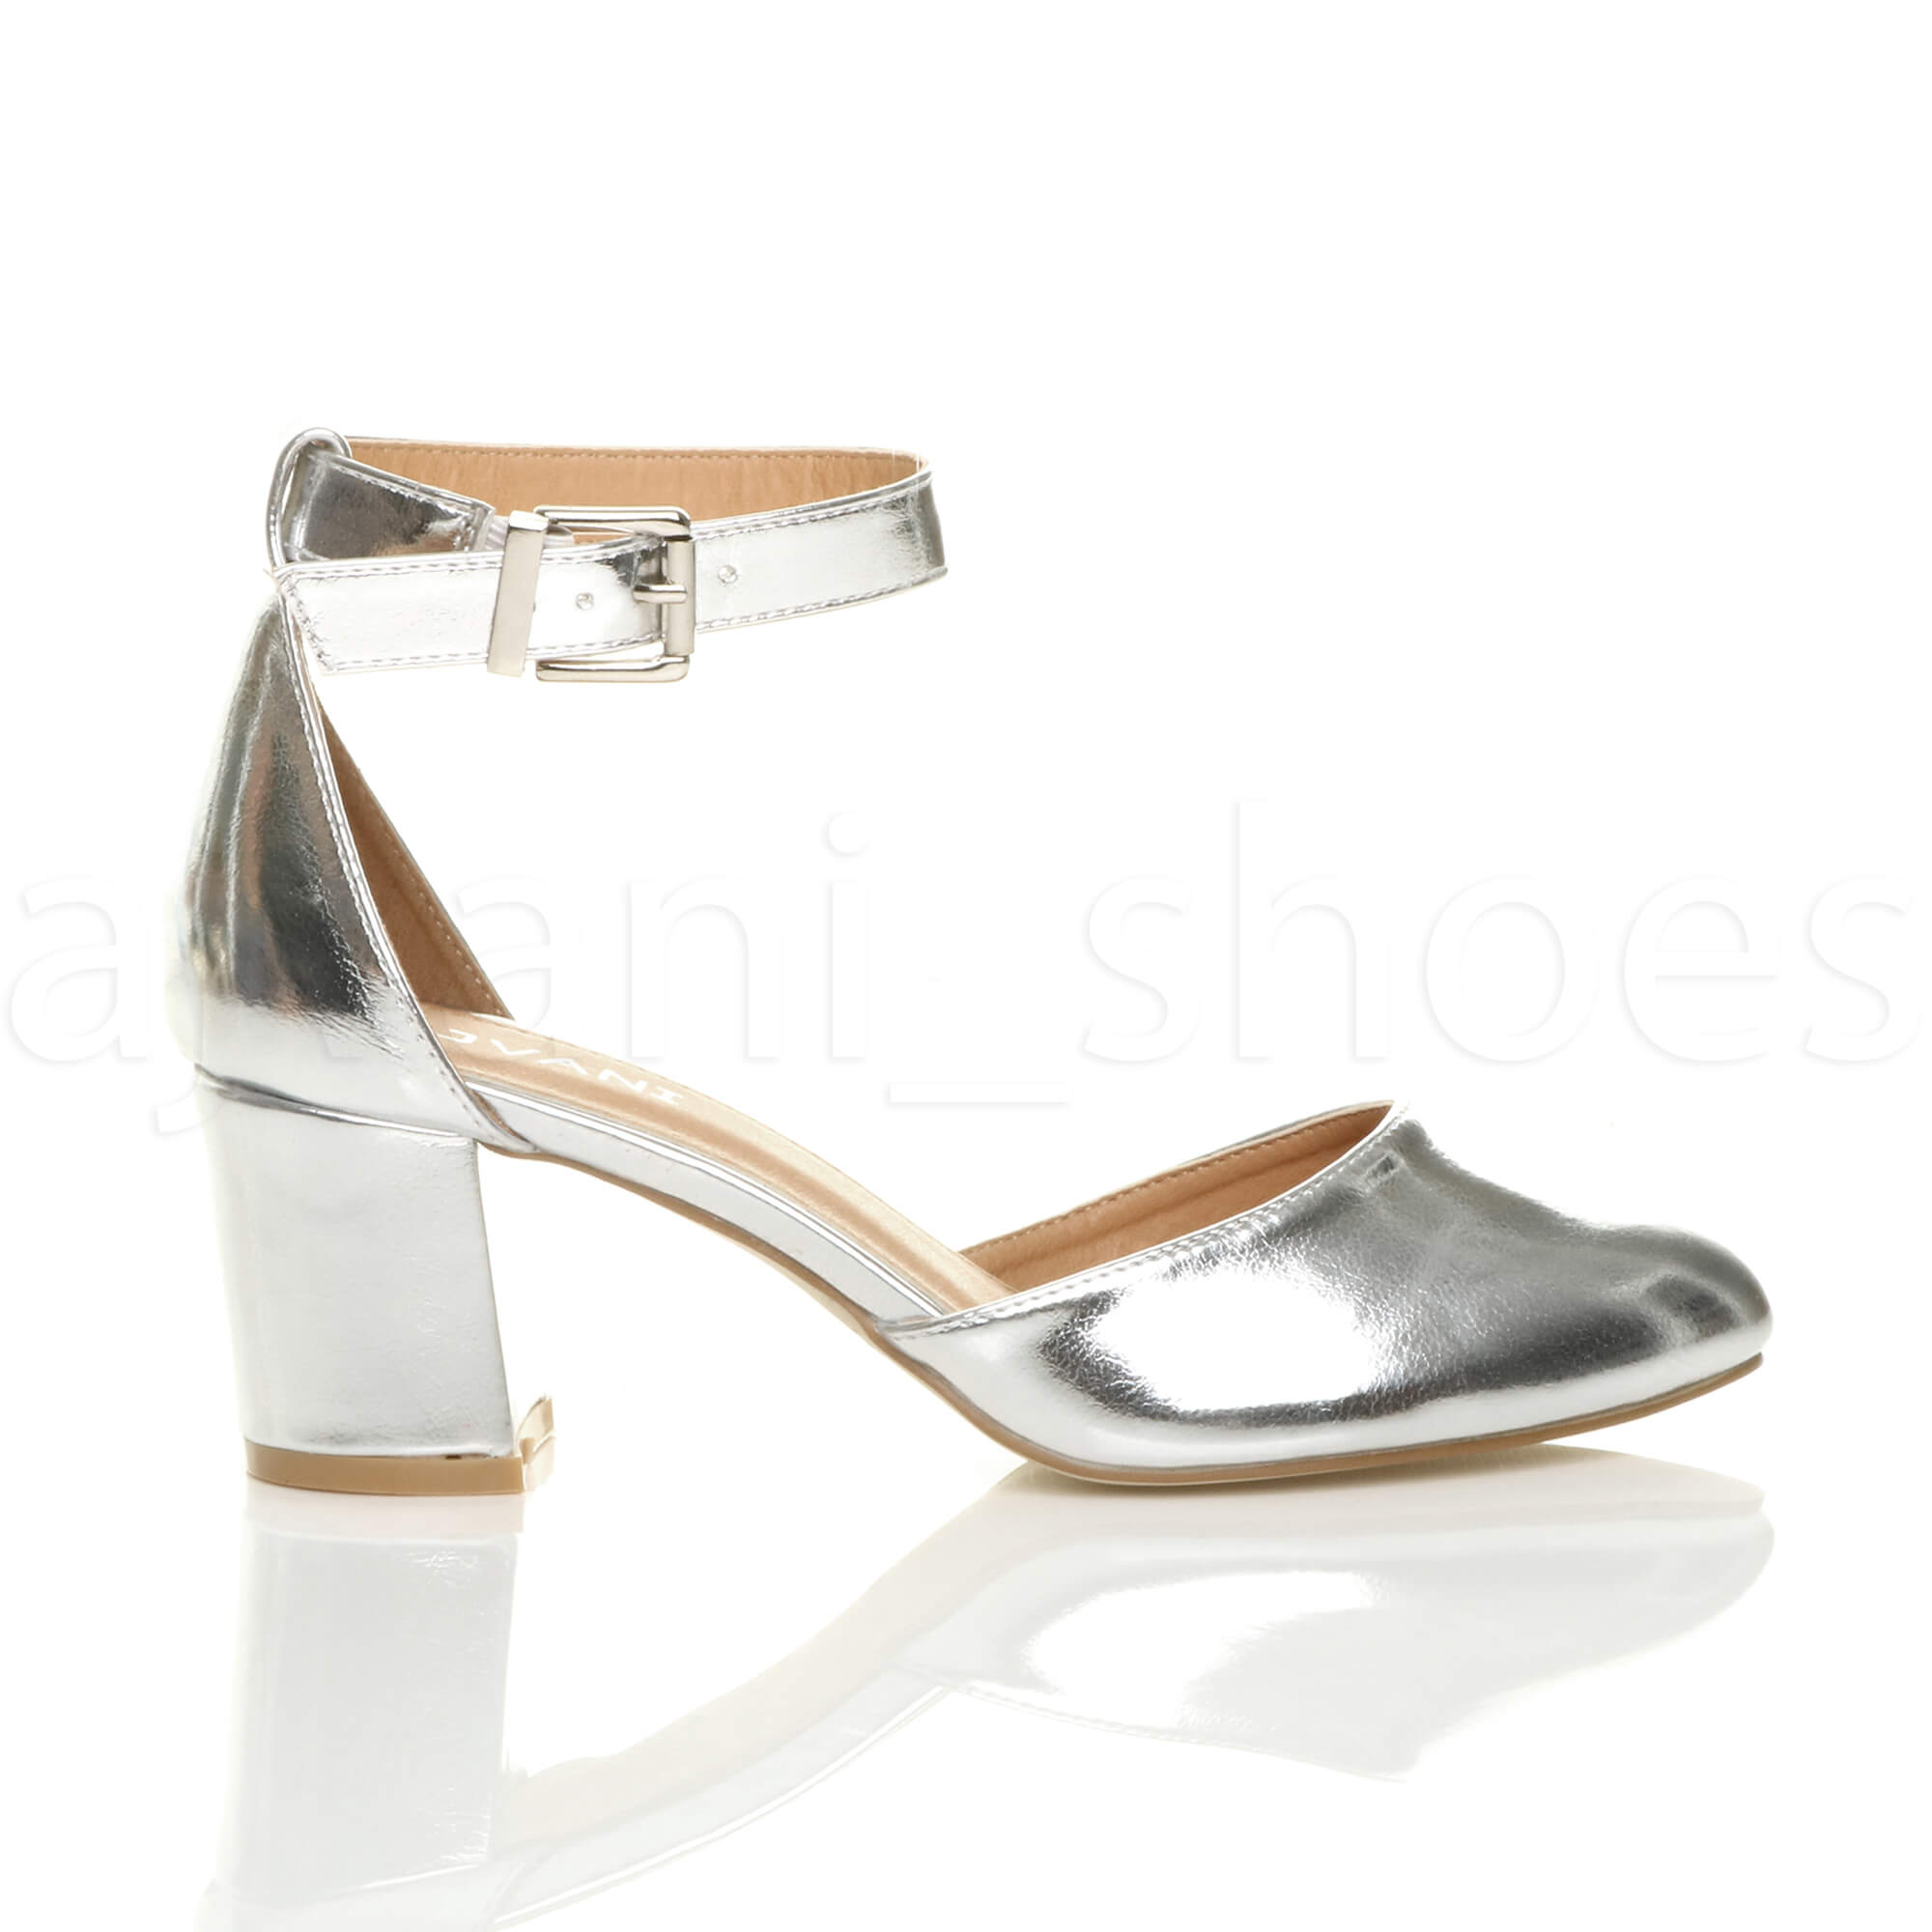 WOMENS-LADIES-LOW-MID-BLOCK-HEEL-ANKLE-STRAP-MARY-JANE-COURT-SHOES-SANDALS-SIZE thumbnail 171